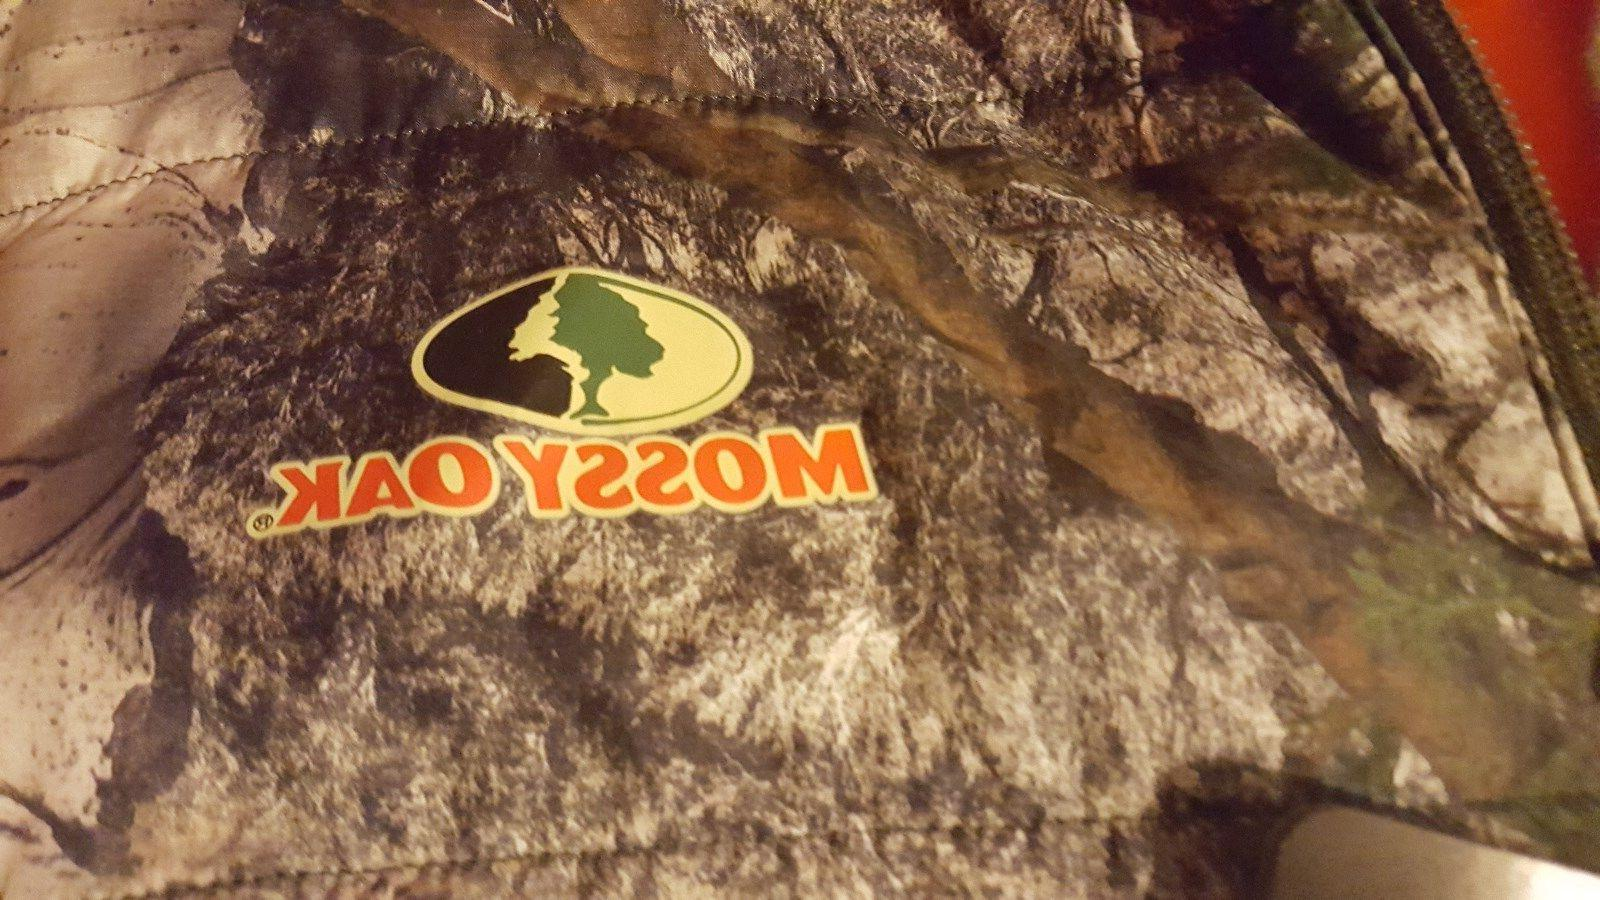 3X 2X L Mens Mossy 3M Insulated Jacket Coat Mountain Country